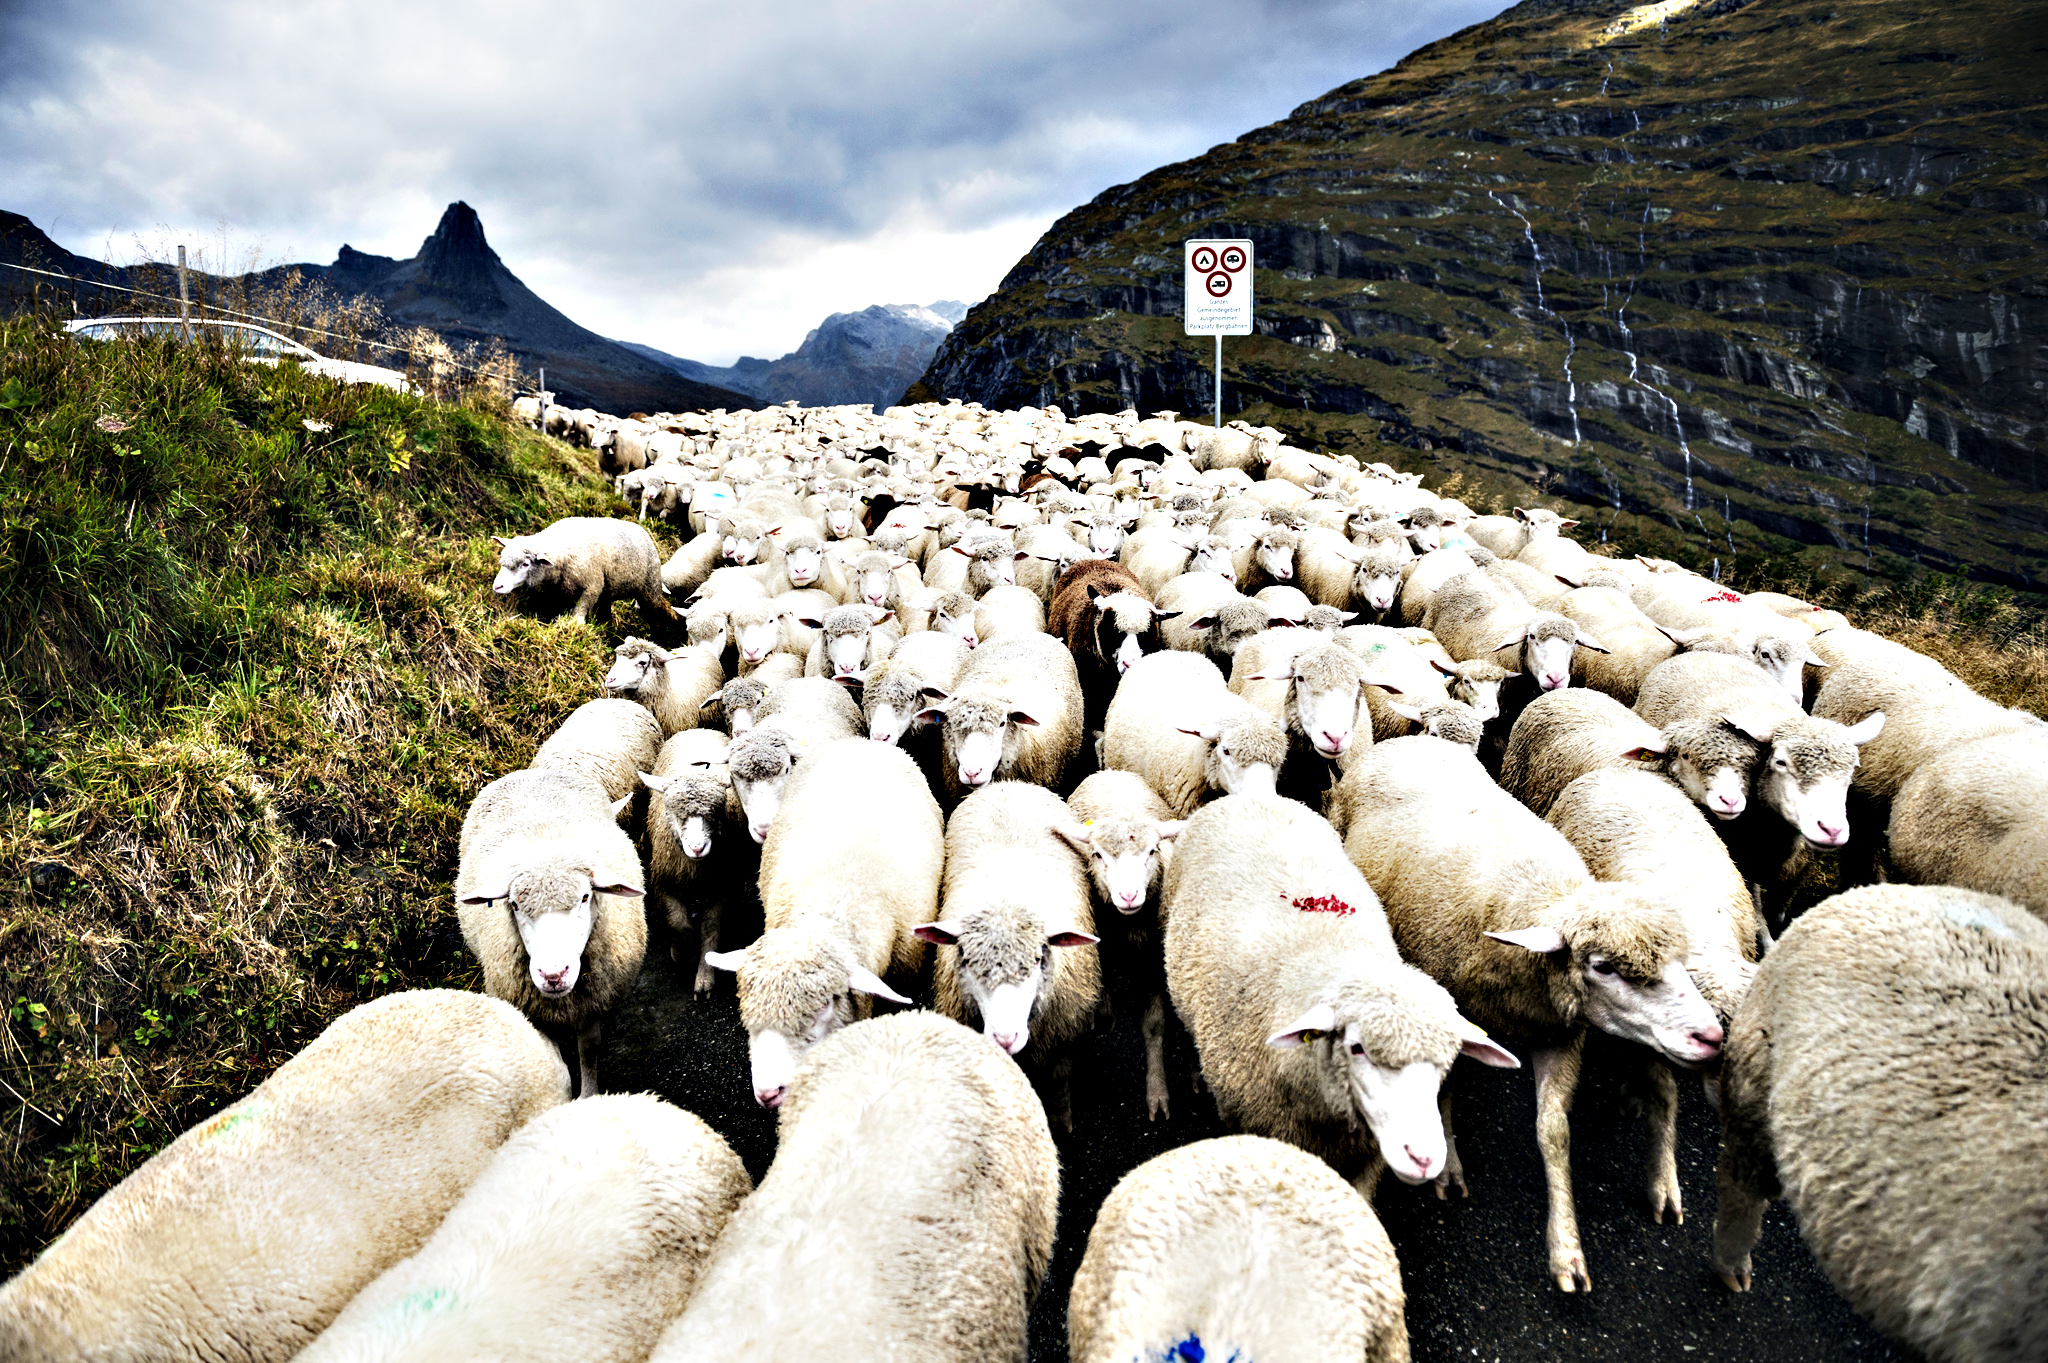 650 sheep are driven down to the valley after a summer on the alp, with the Zervreilahorn peak (2898 meters above sea level) in the background, on Thursday, Sept. 17, 2015, in Vals, canton of Grisons, eastern Switzerland.